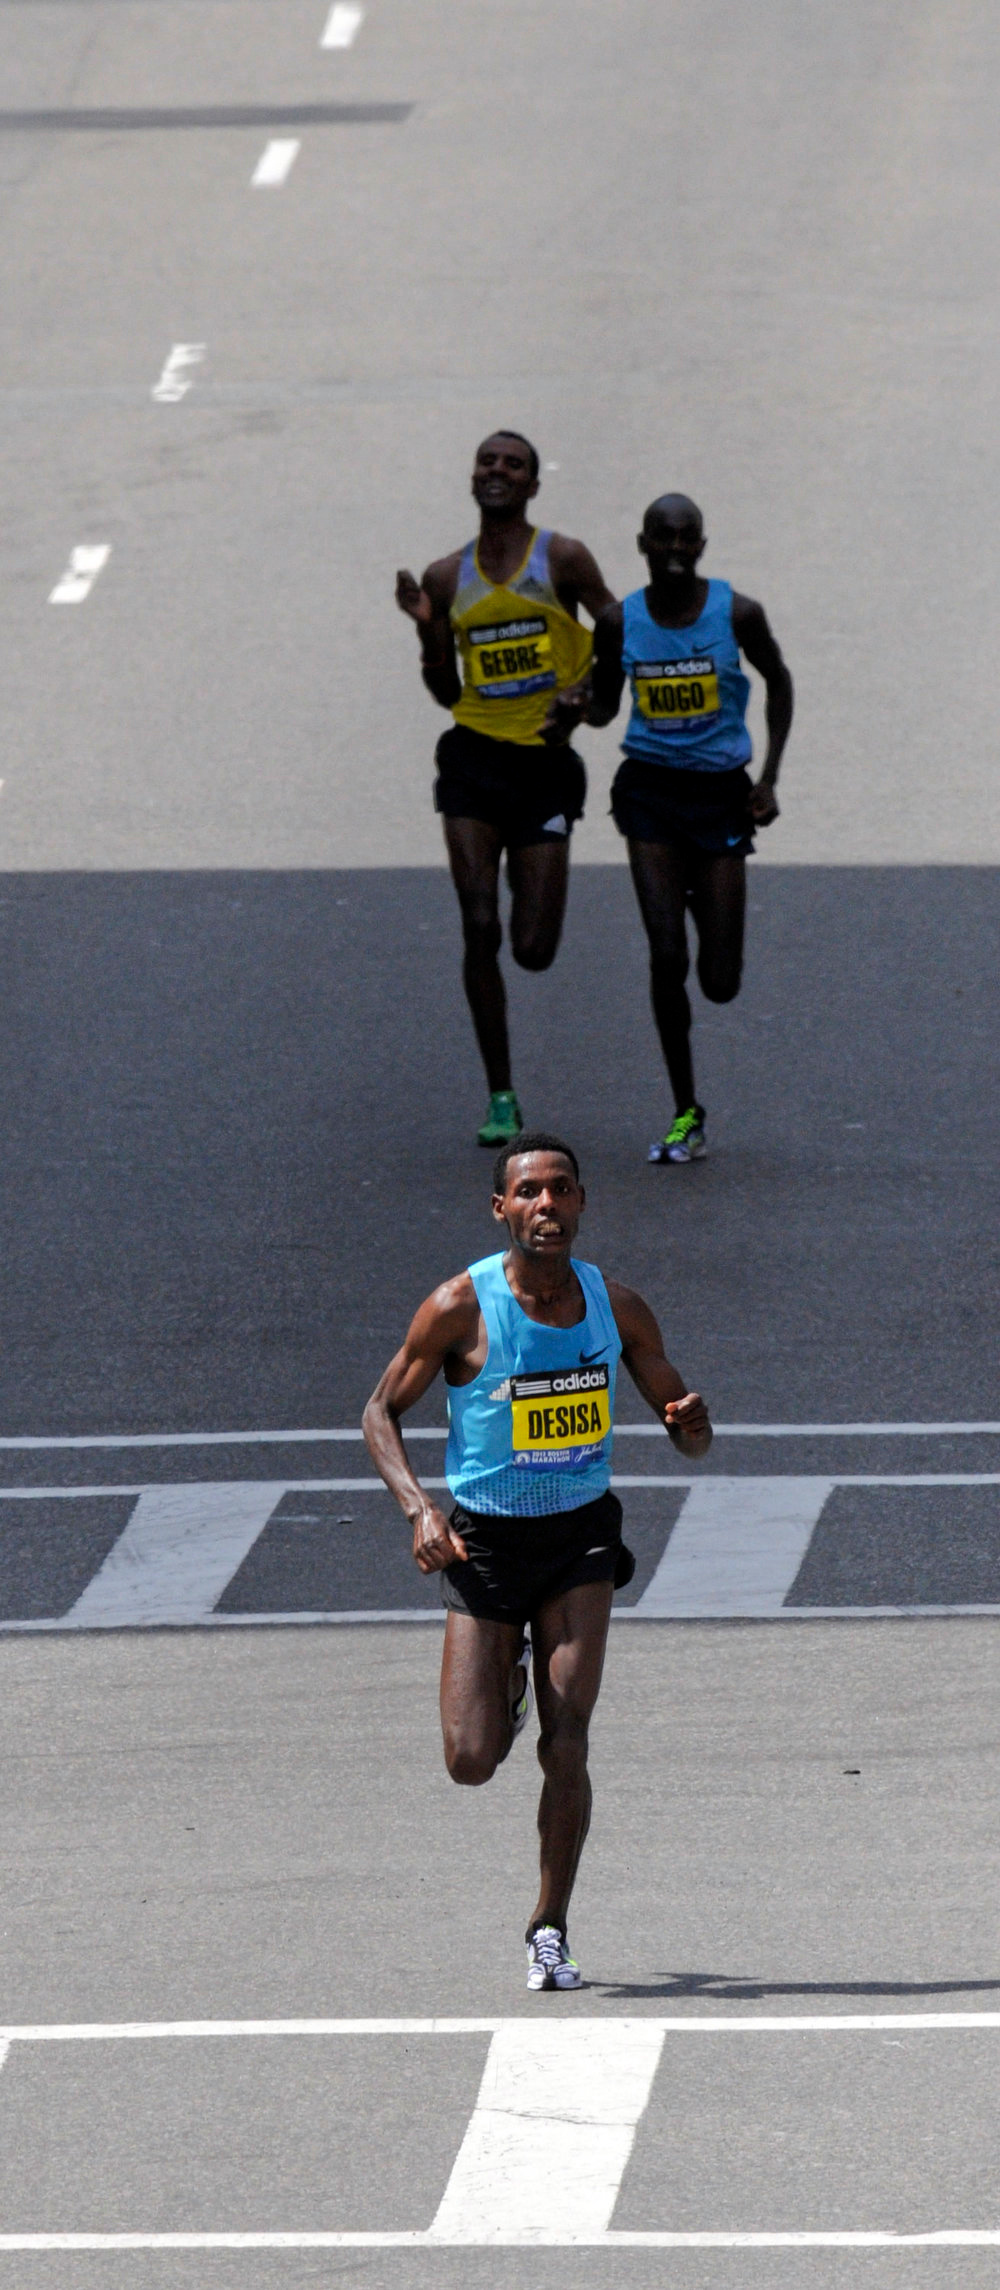 ". Lelisa Desisa Benti of Ethiopia (front) runs a few seconds ahead of Micah Kogo of Kenya and Gebregziabher ""Gebre\"" Gebremariam of Ethiopa as they sprint to the finish of the men\'s division of the 117th Boston Marathon in Boston, Massachusetts April 15, 2013. REUTERS/Neal Hamberg"